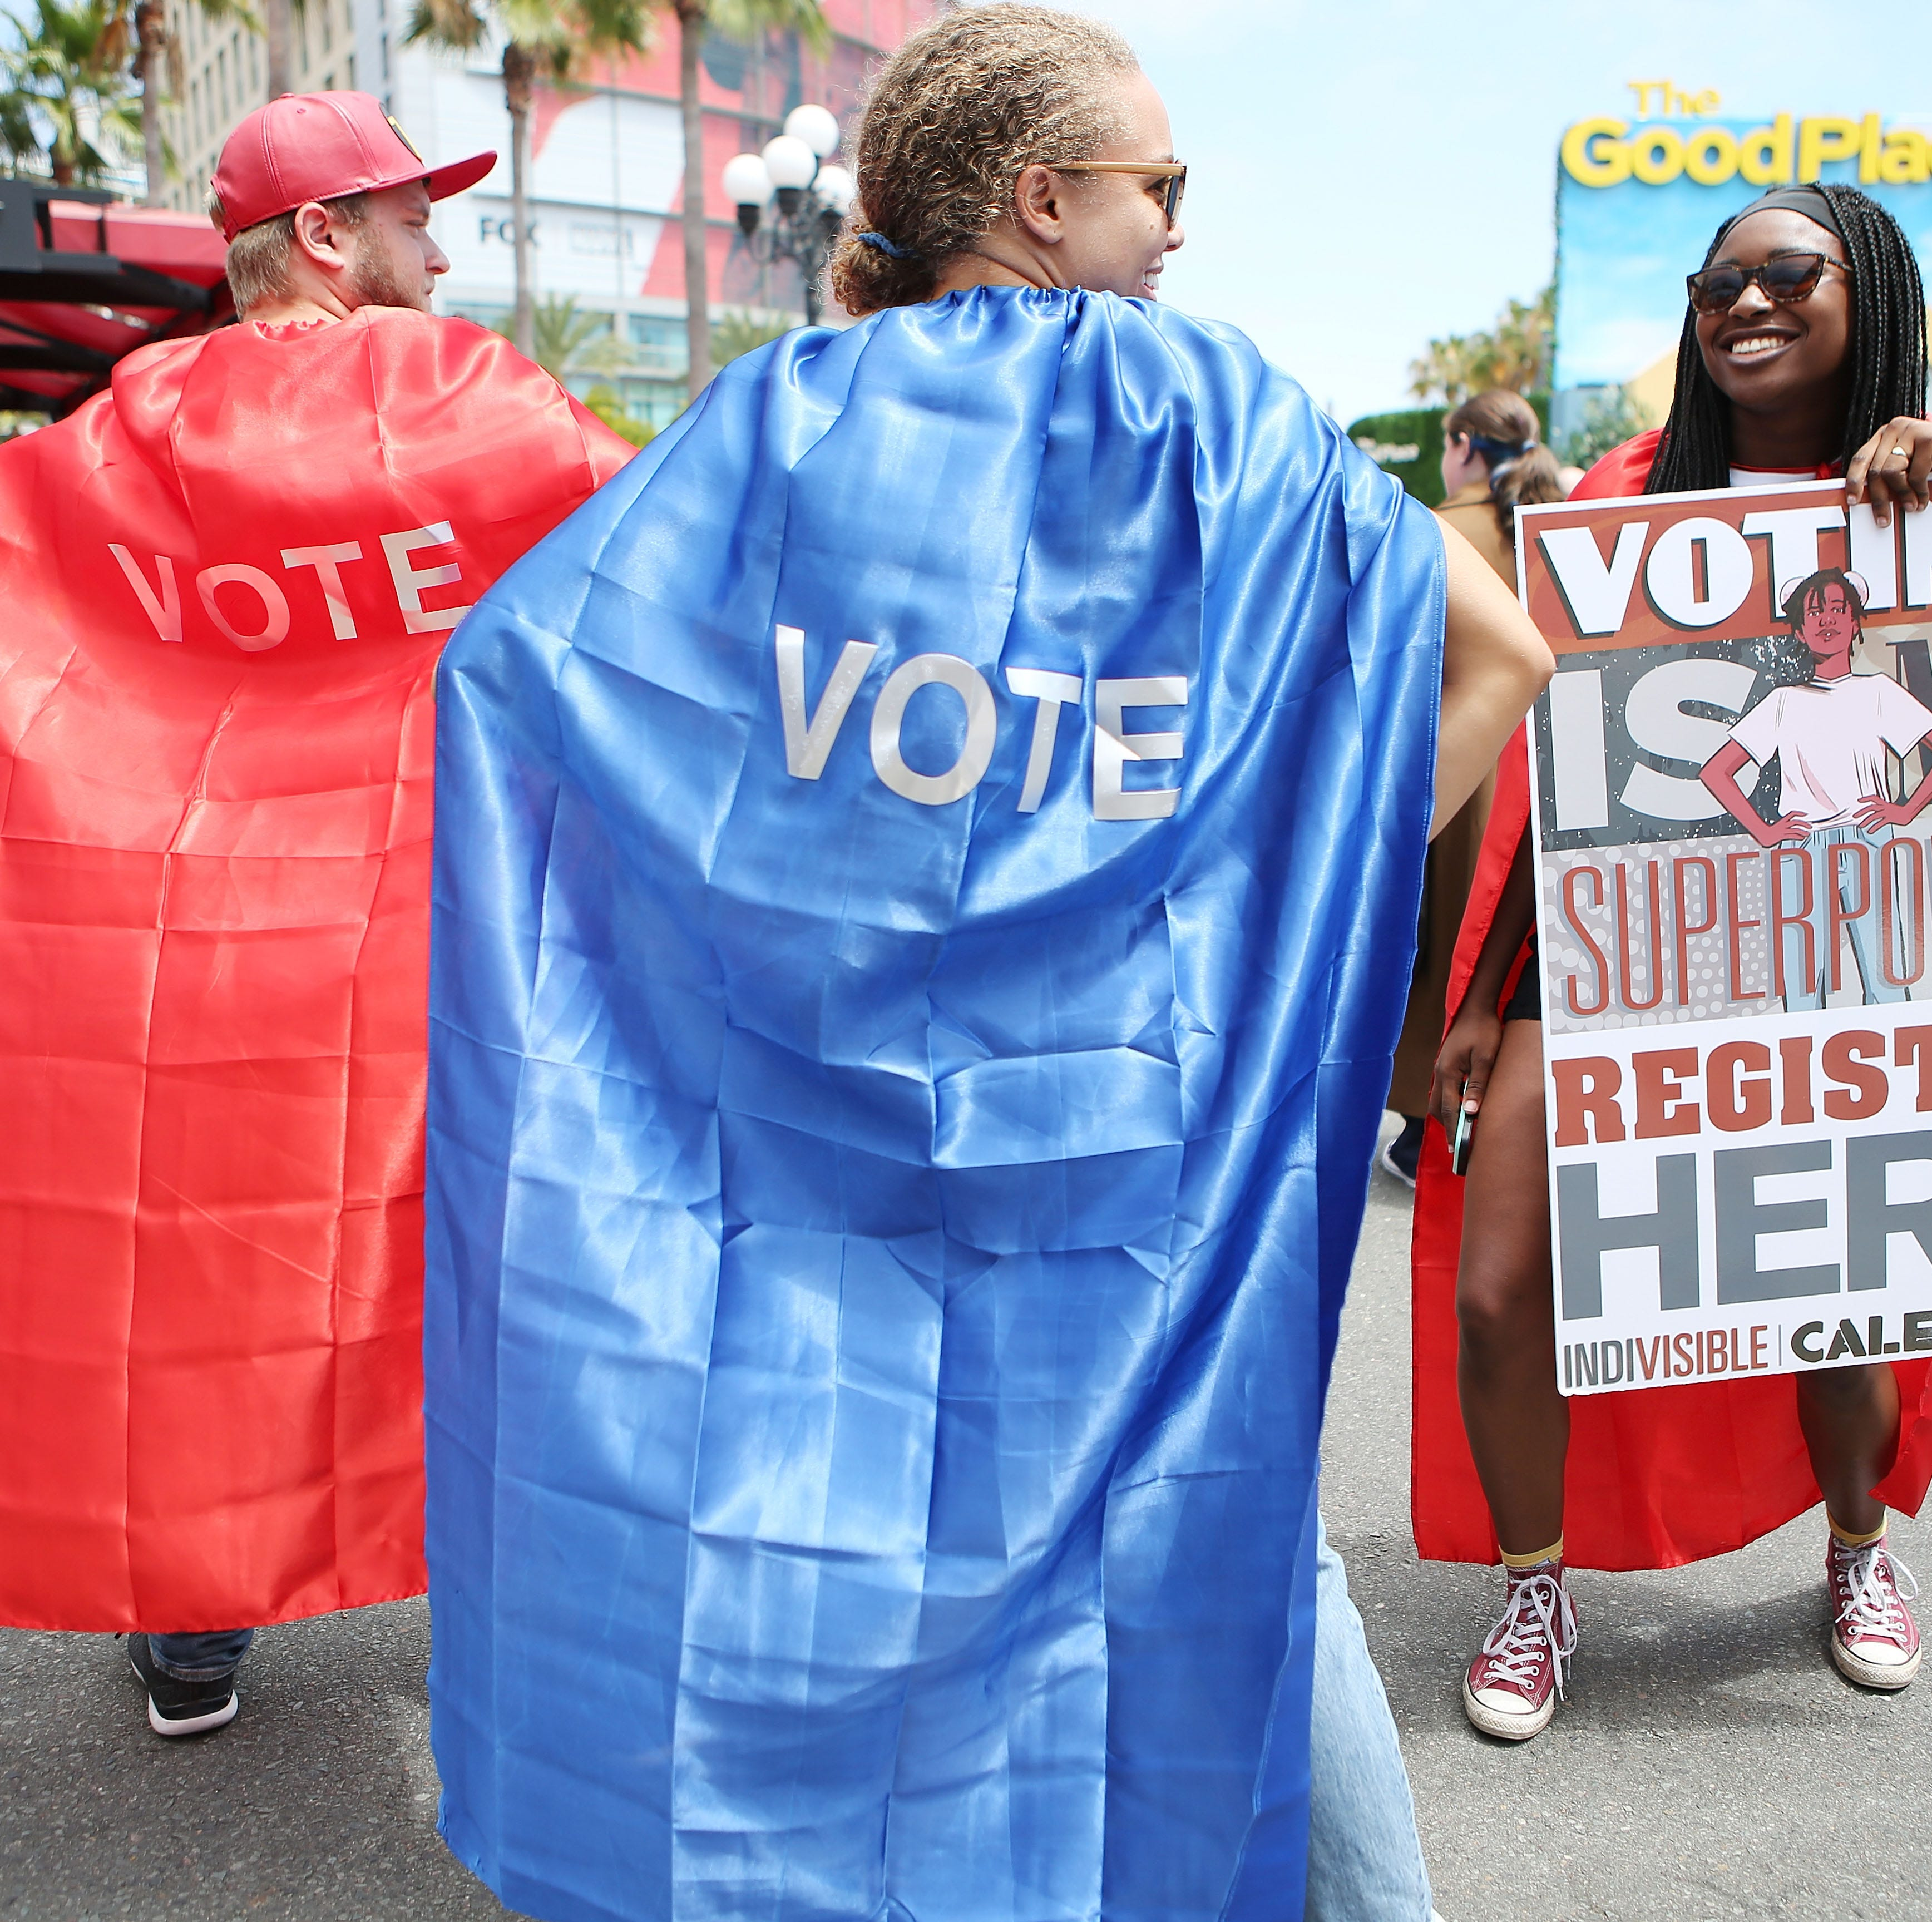 Voting integrity should not be seen as a partisan issue